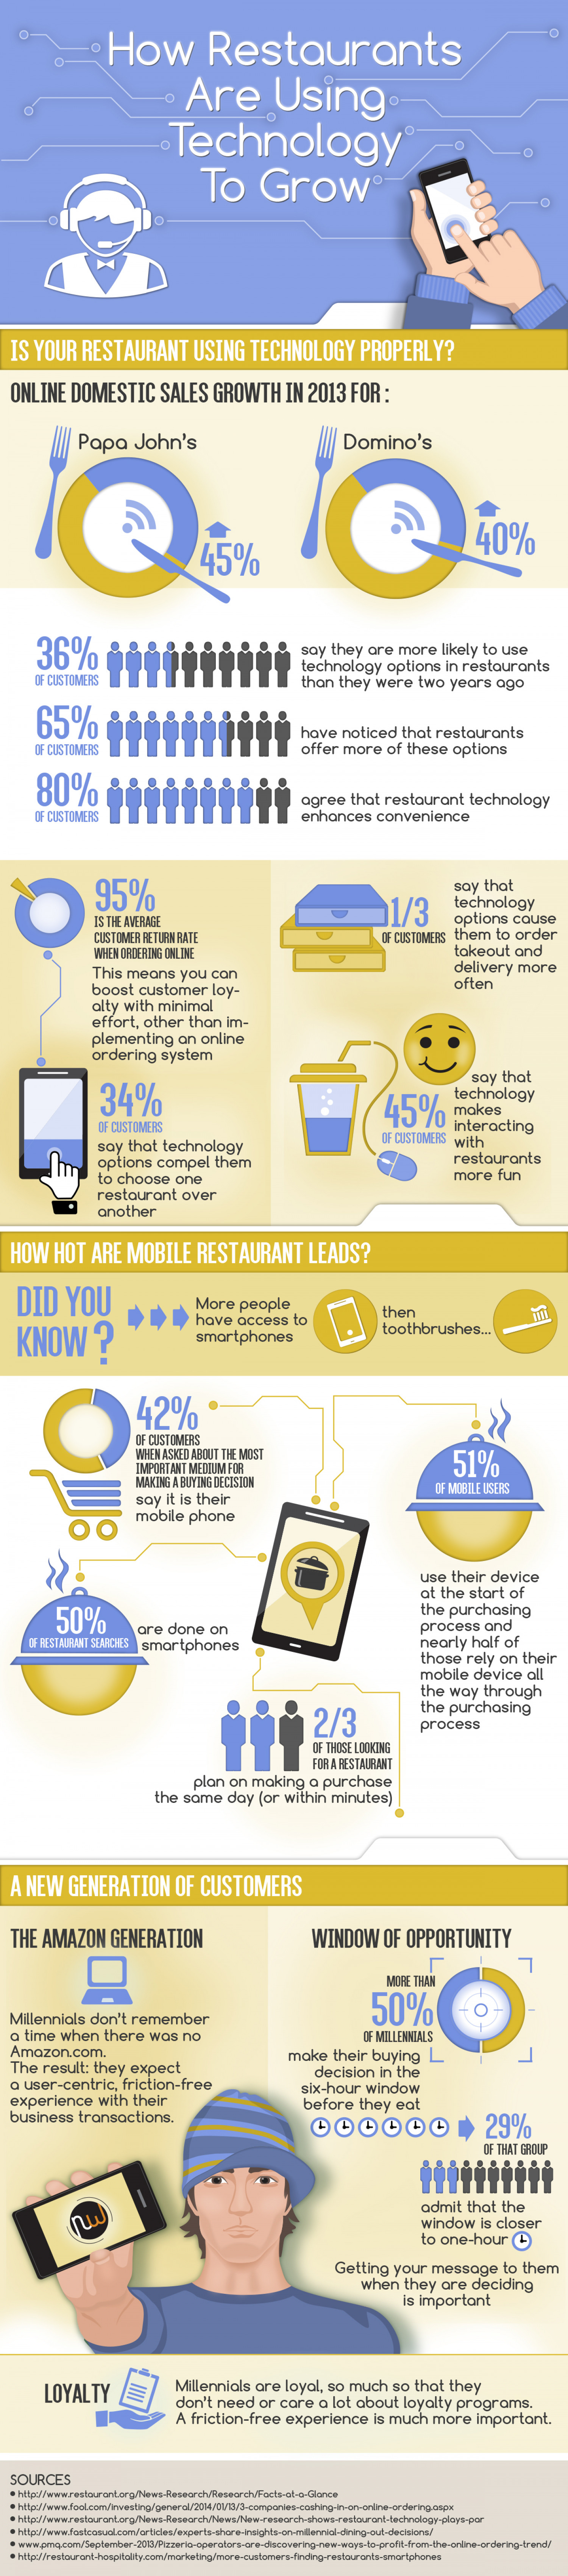 Restaurants and Technology Infographic